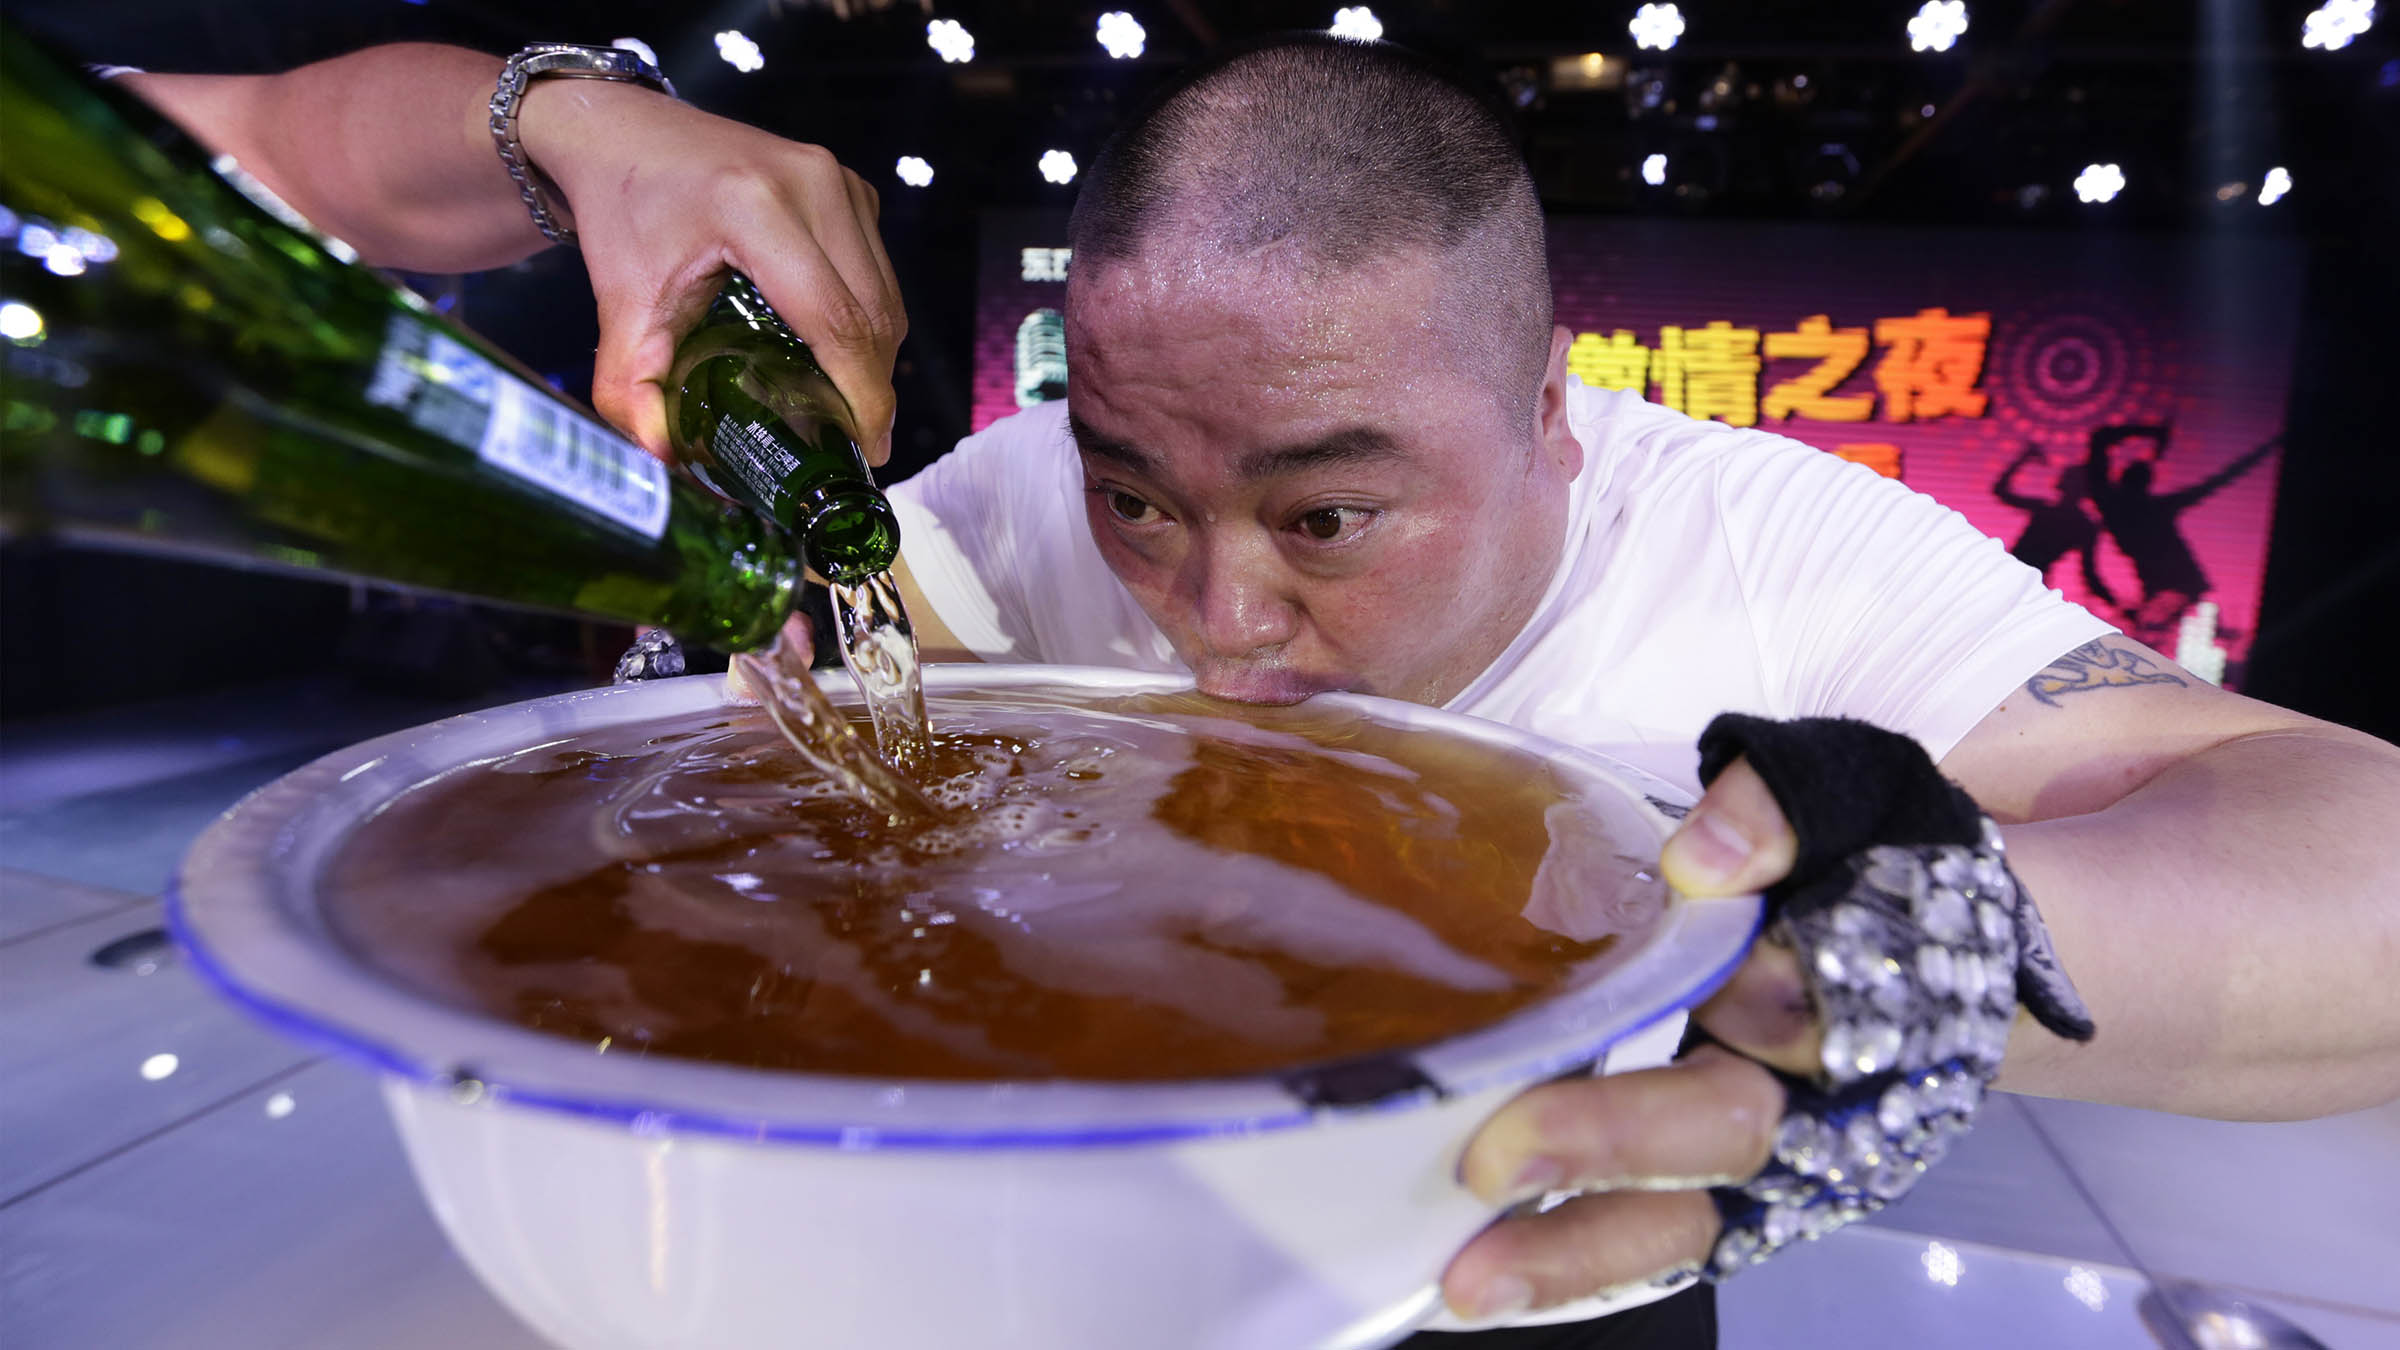 A singer drinks from a huge bowl of beer on-stage as he pays tribute to the customers after performing at an entertainment club in Beijing May 8, 2014. Picture taken May 8, 2014. REUTERS/Jason Lee (CHINA - Tags: SOCIETY TPX IMAGES OF THE DAY) - RTR3ODZ2